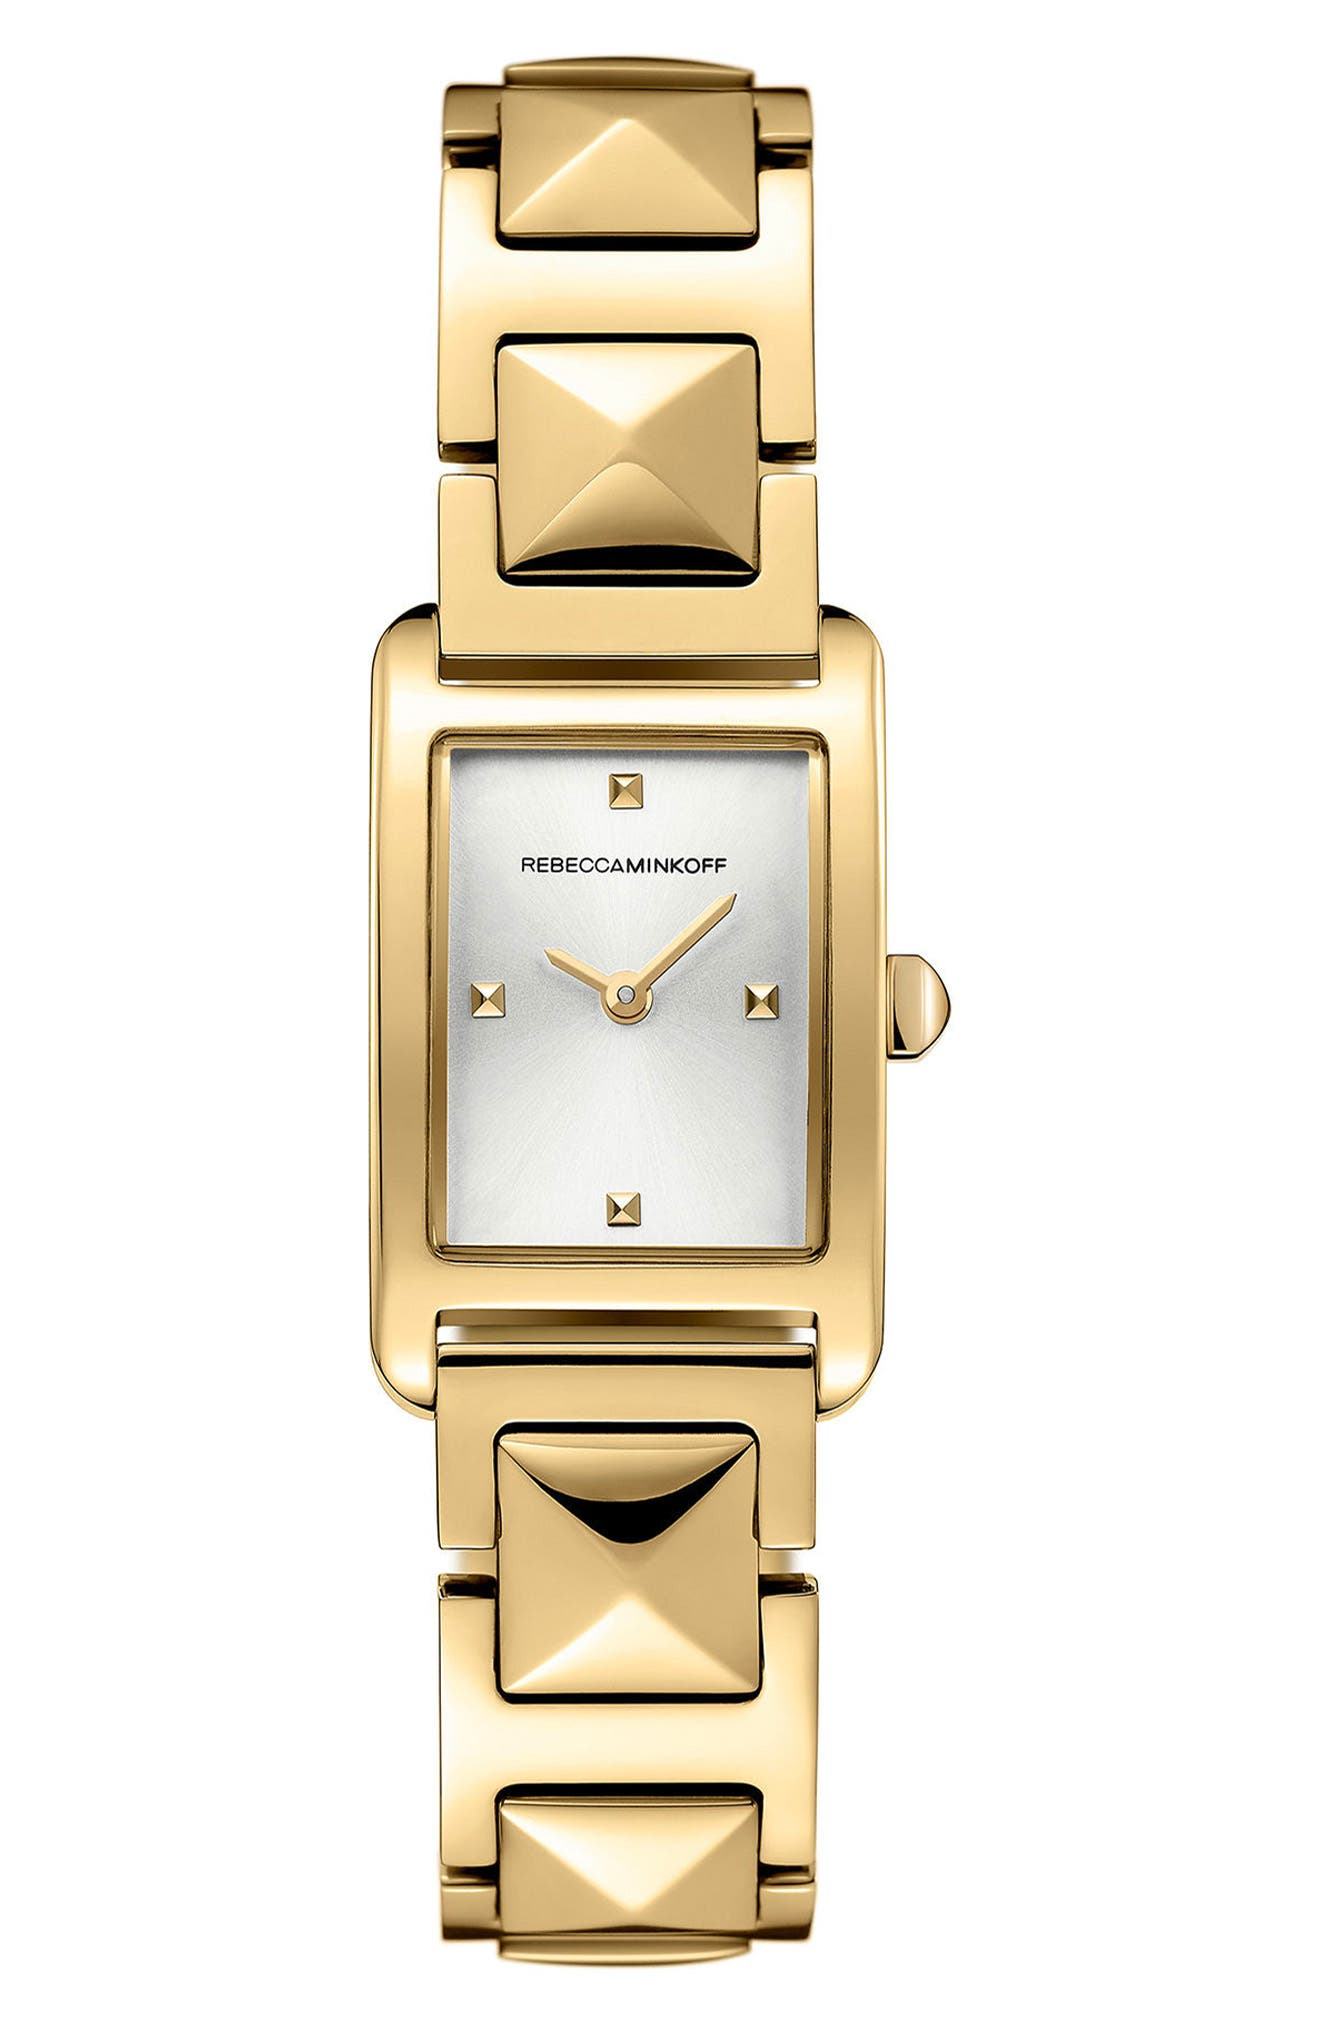 Main Image - Rebecca Minkoff Moment Bracelet Watch, 19mm x 30mm